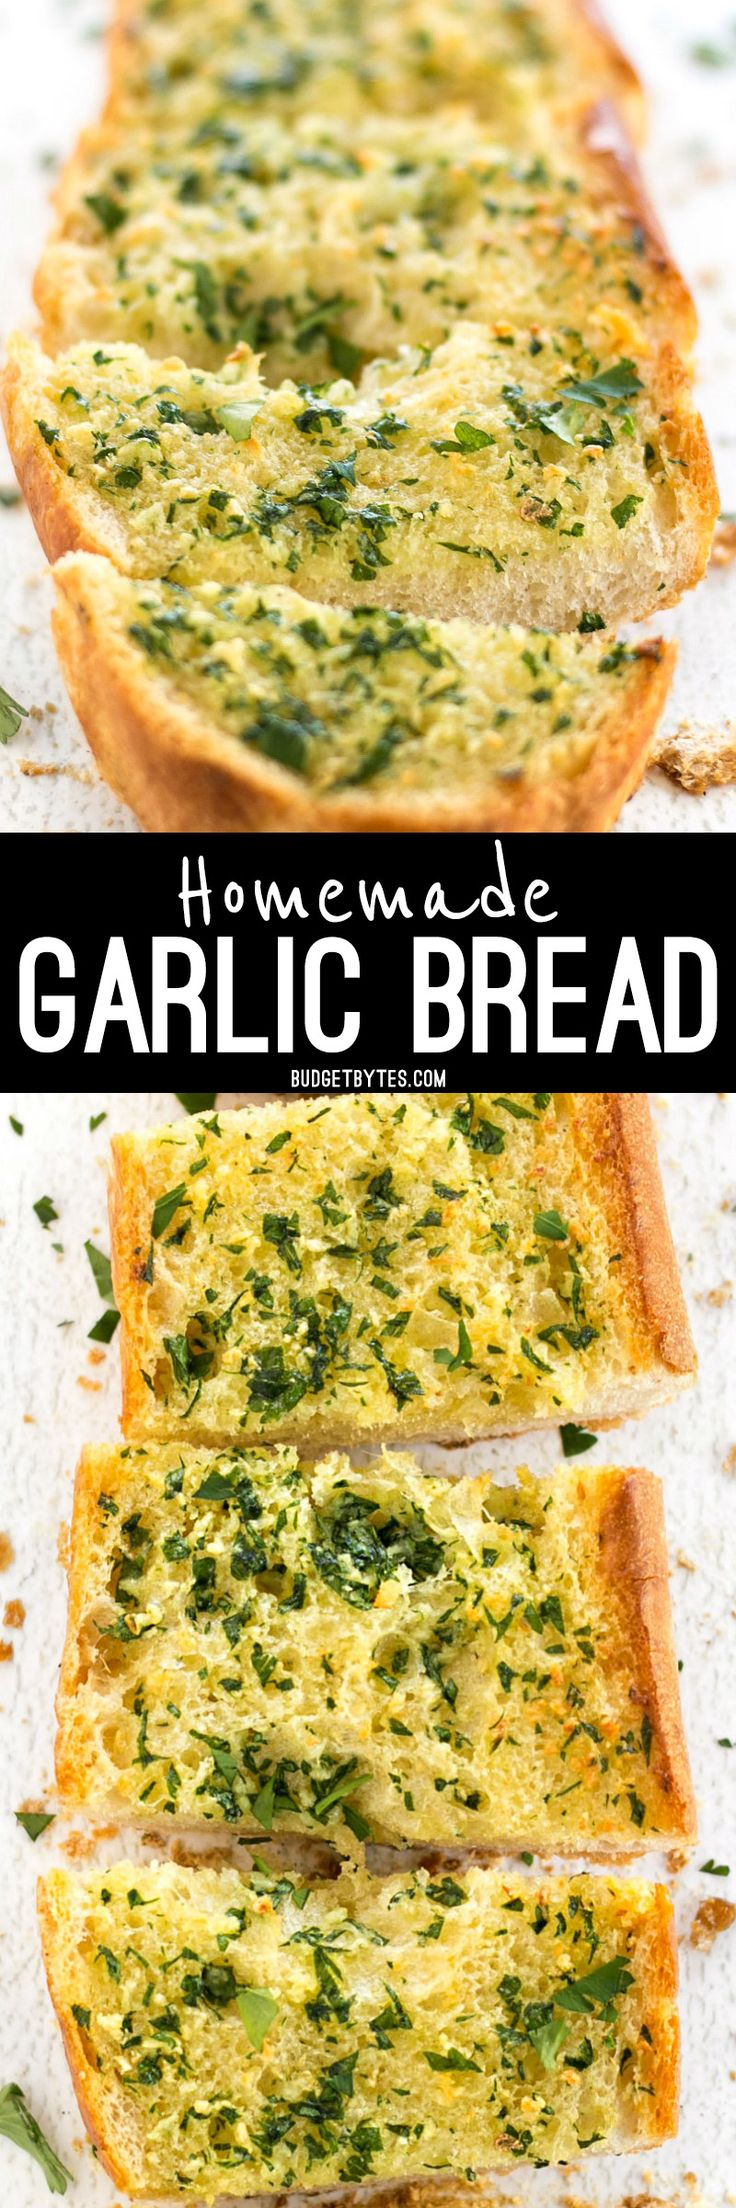 Homemade Garlic Bread is twice as nice for half the price of it's frozen store bought counterpart! Plus it only takes minute to make and can be stored, unbaked, in the freezer. @budgetbytes